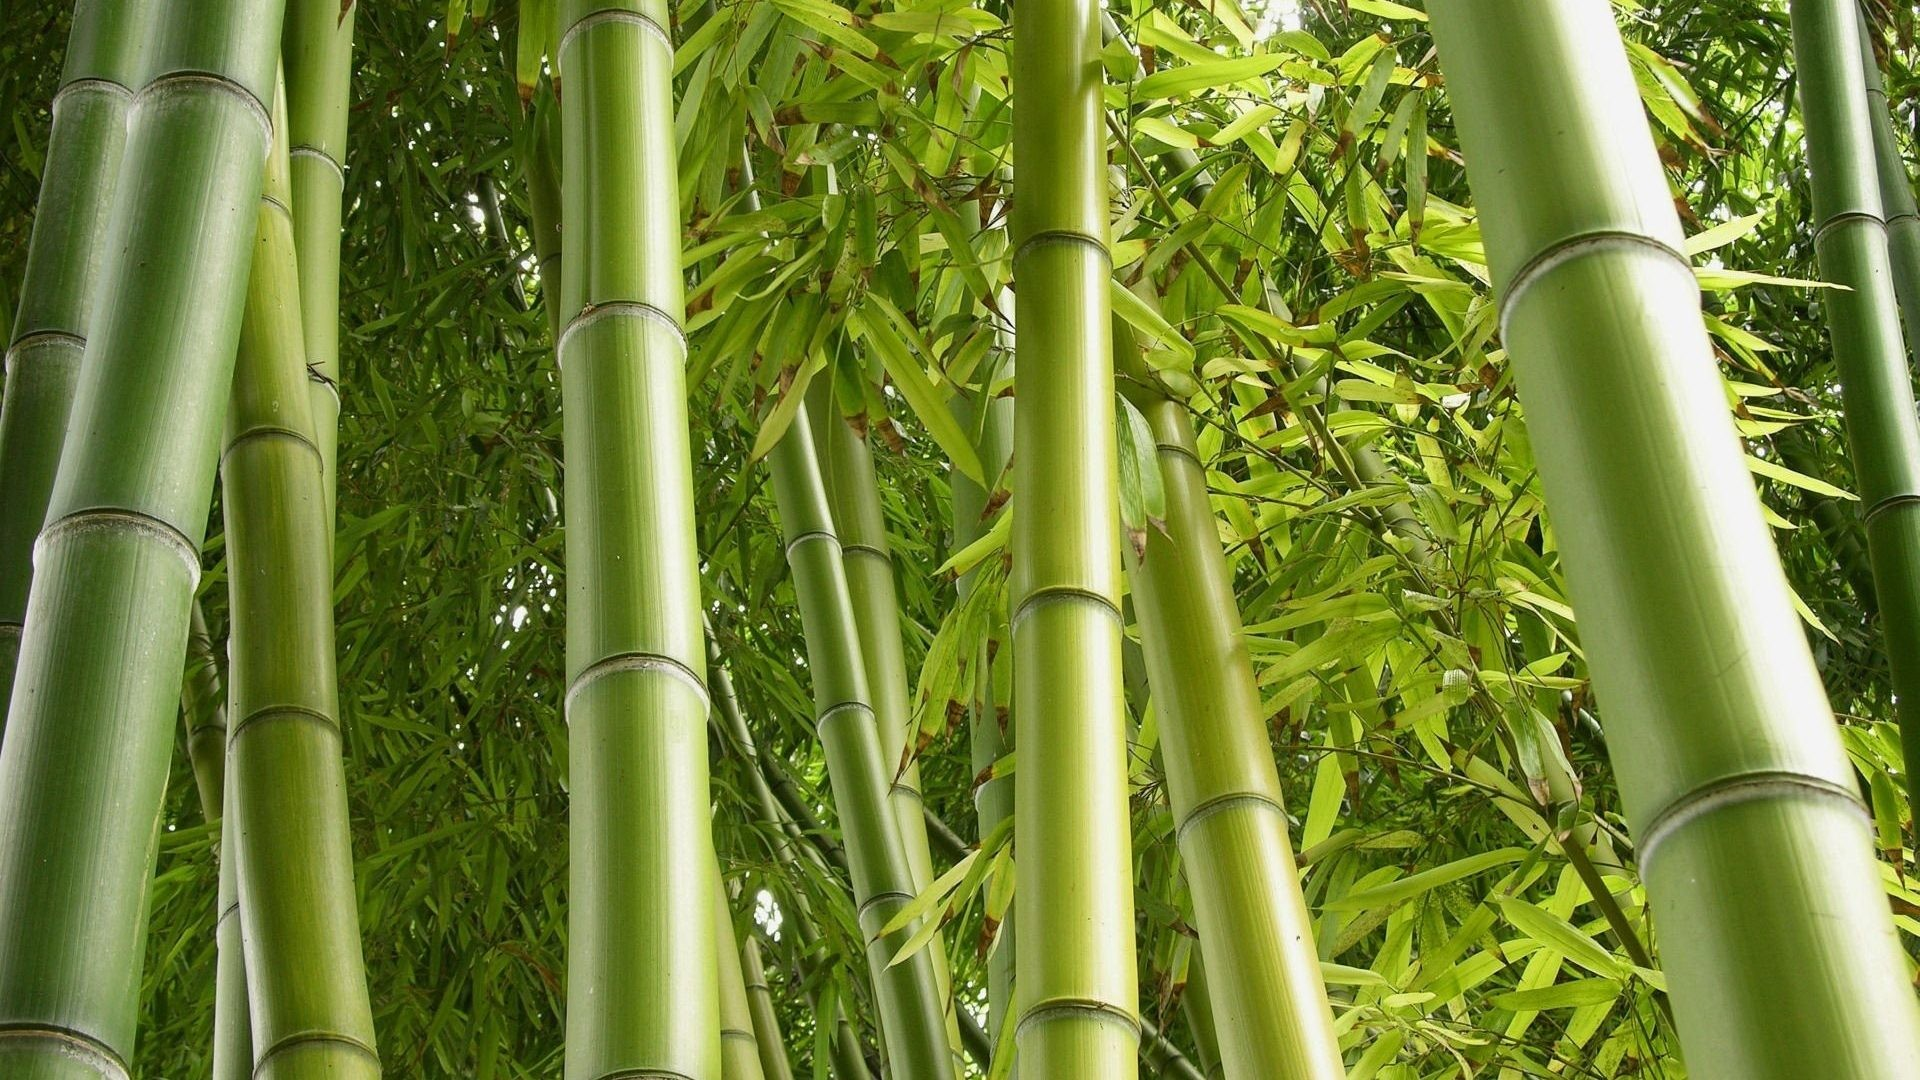 1920x1080 Jungle Green Bamboo Nature Plants Stunning Desktop Backgrounds - 1920x1440